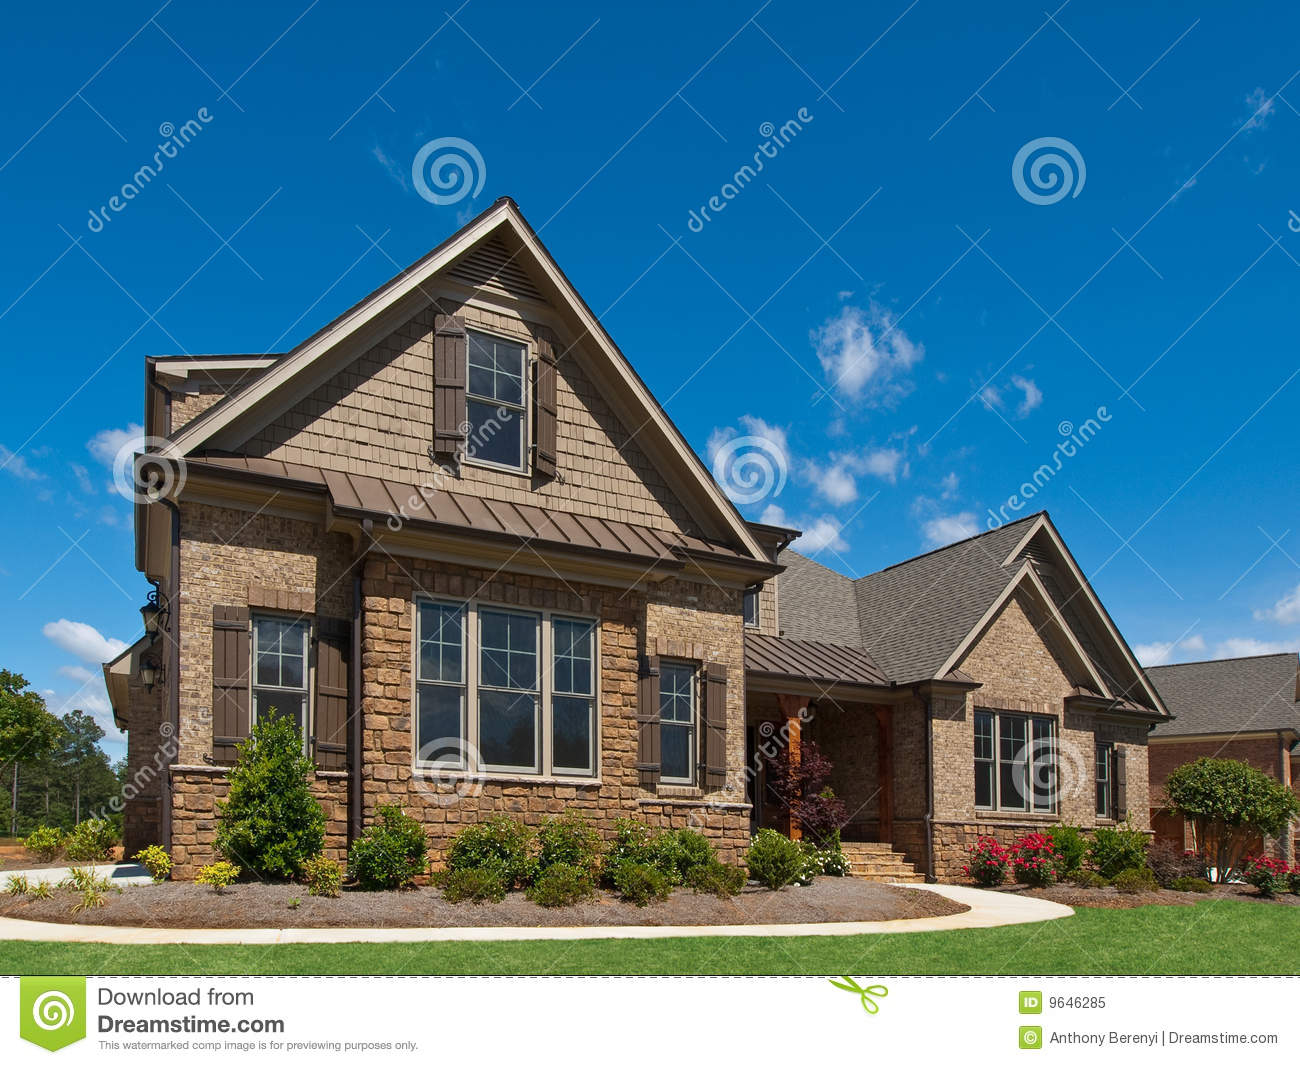 Model luxury home exterior angle view sidewalk stock image for Luxury home models